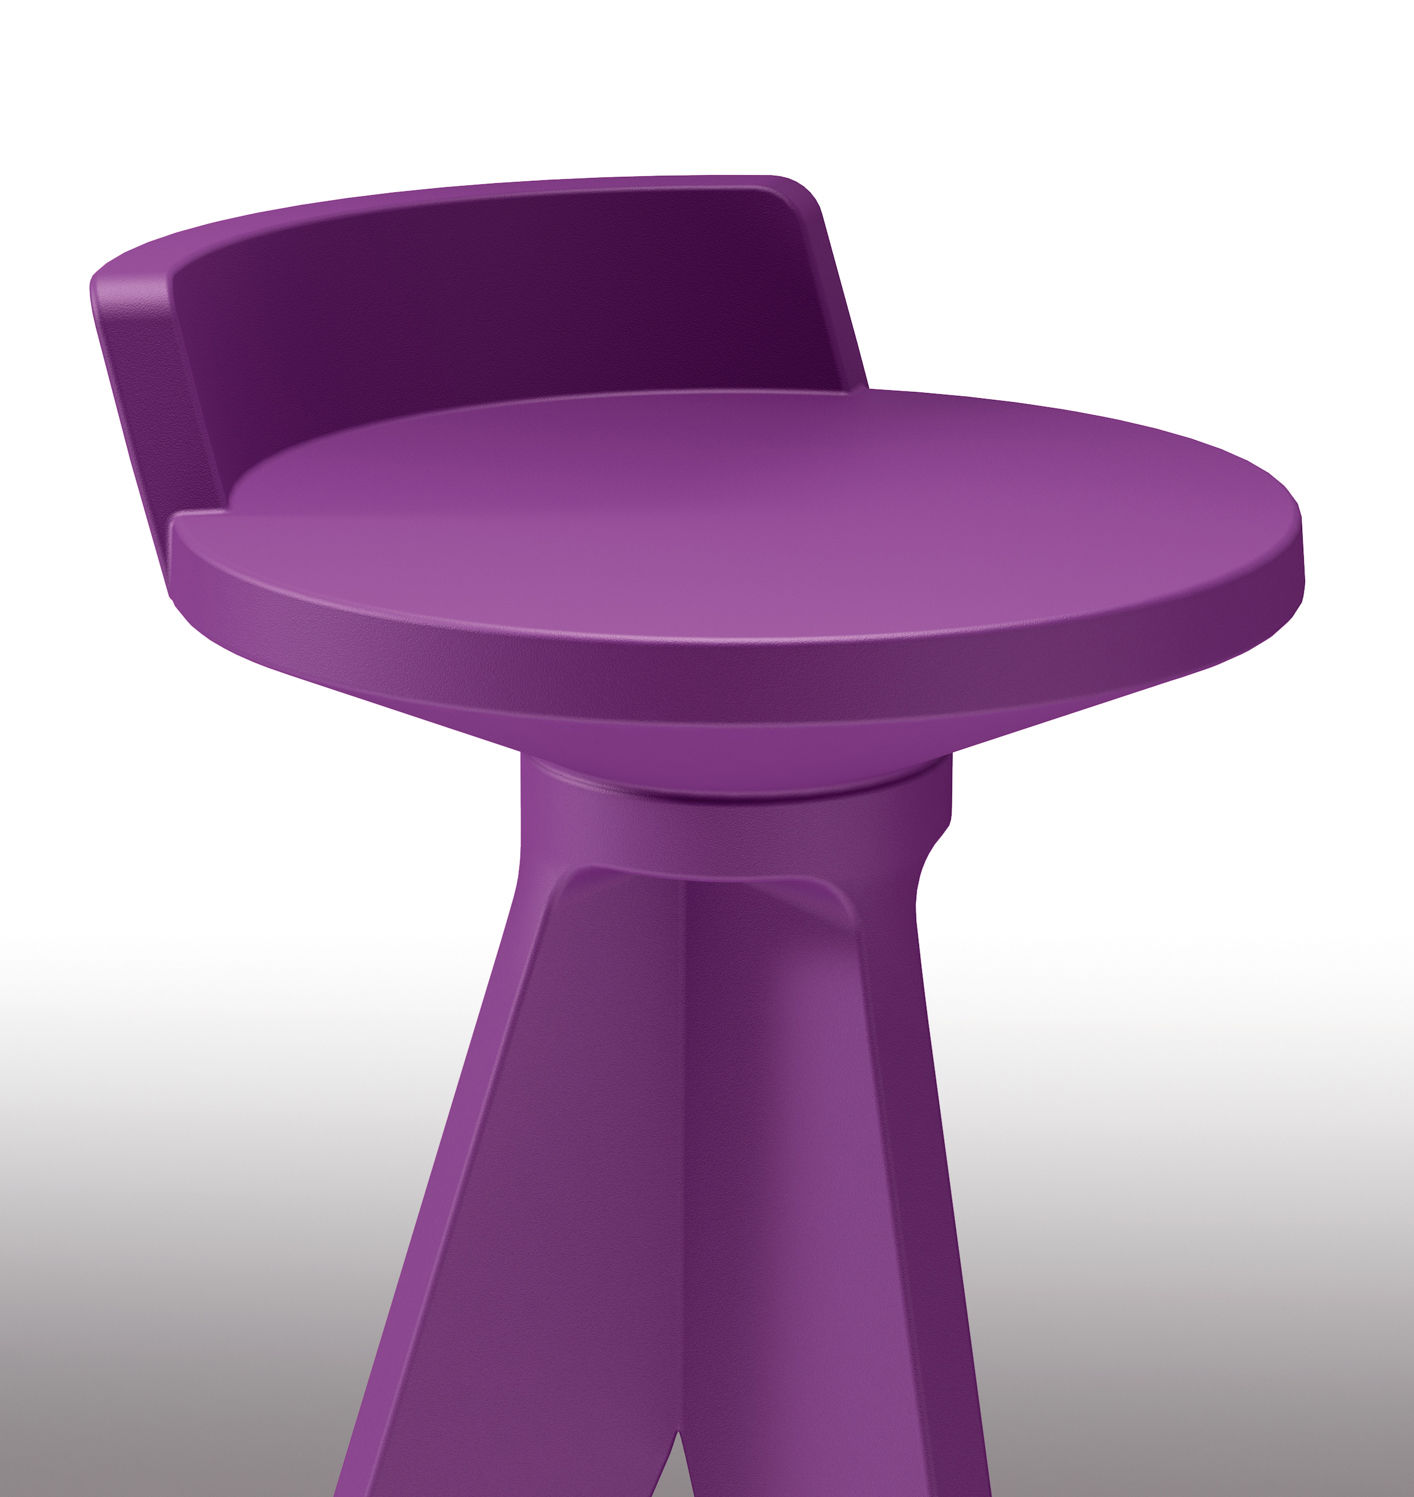 Tabouret De Bar Plastique Tabouret De Bar Oxford H 75 Cm Plastique Myyour